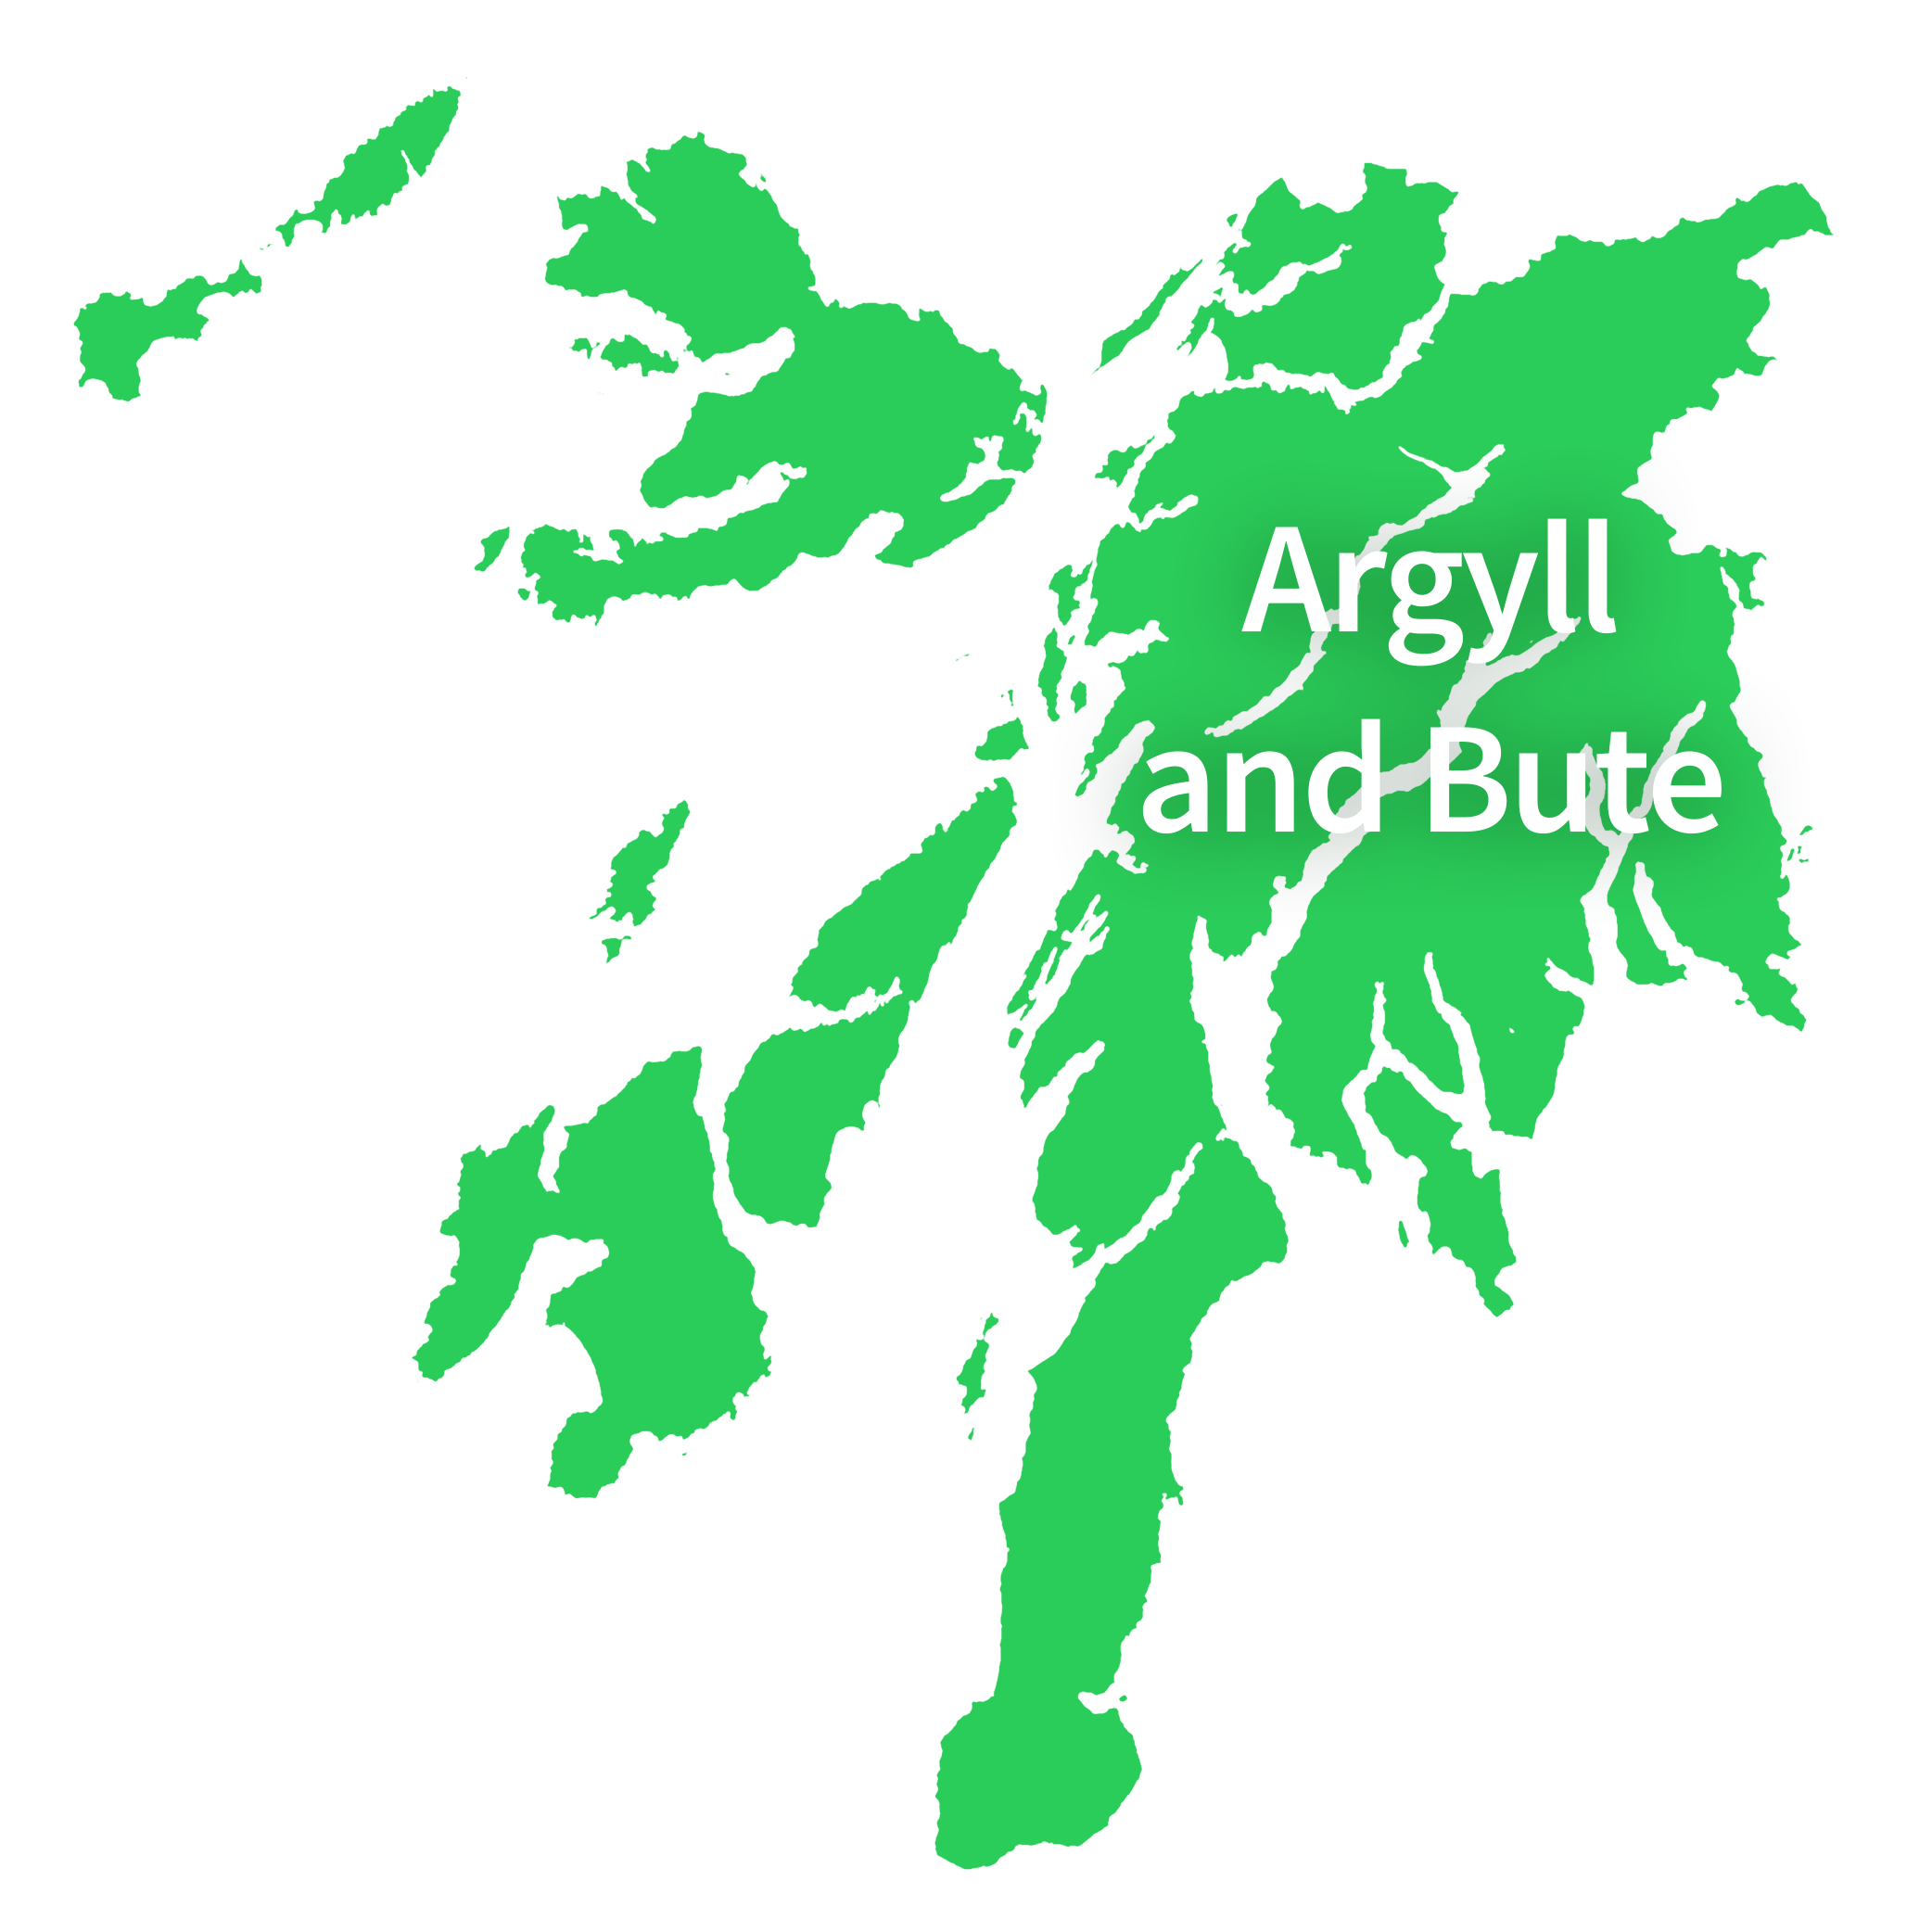 Map of Argyll and Bute